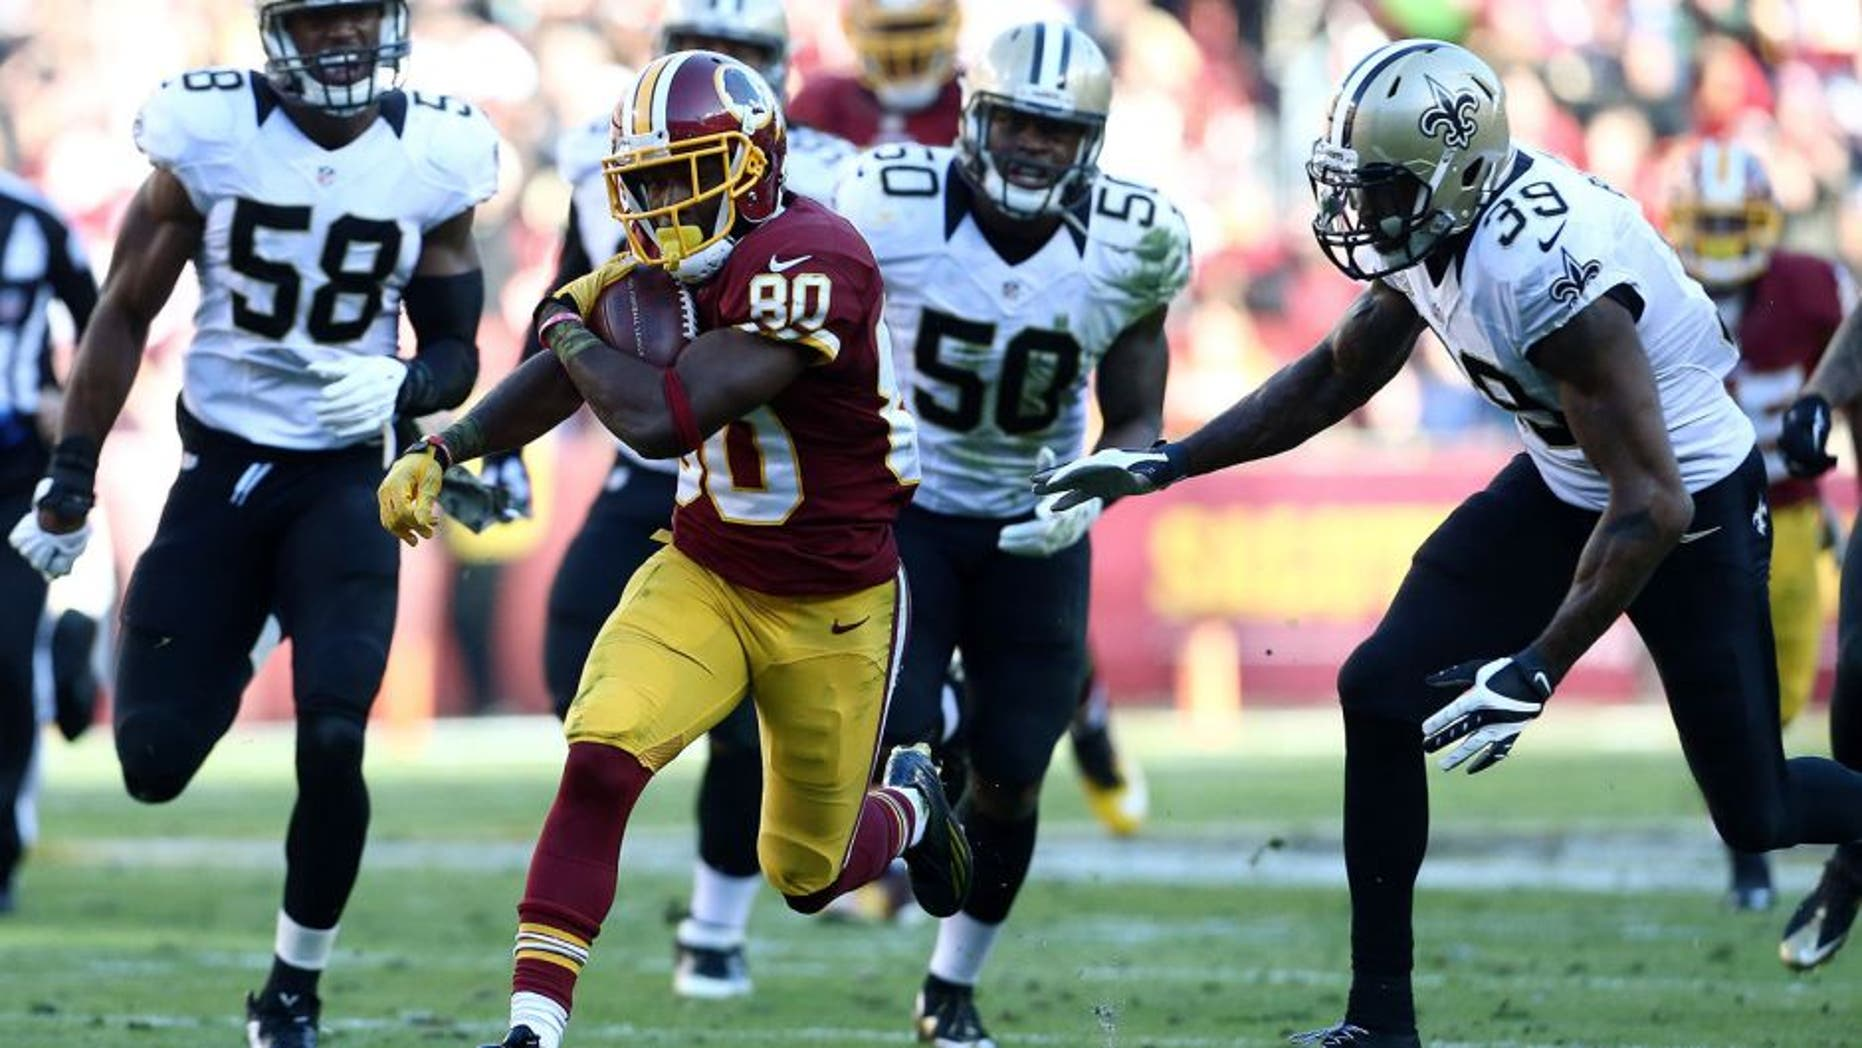 LANDOVER, MD - NOVEMBER 15: Wide receiver Jamison Crowder #80 of the Washington Redskins carries the ball past cornerback Brandon Browner #39 of the New Orleans Saints, middle linebacker Stephone Anthony #50 of the New Orleans Saints, linebacker James Anderson #58 of the New Orleans Saints in the second quarter of a game at FedExField on November 15, 2015 in Landover, Maryland. (Photo by Matt Hazlett/Getty Images)